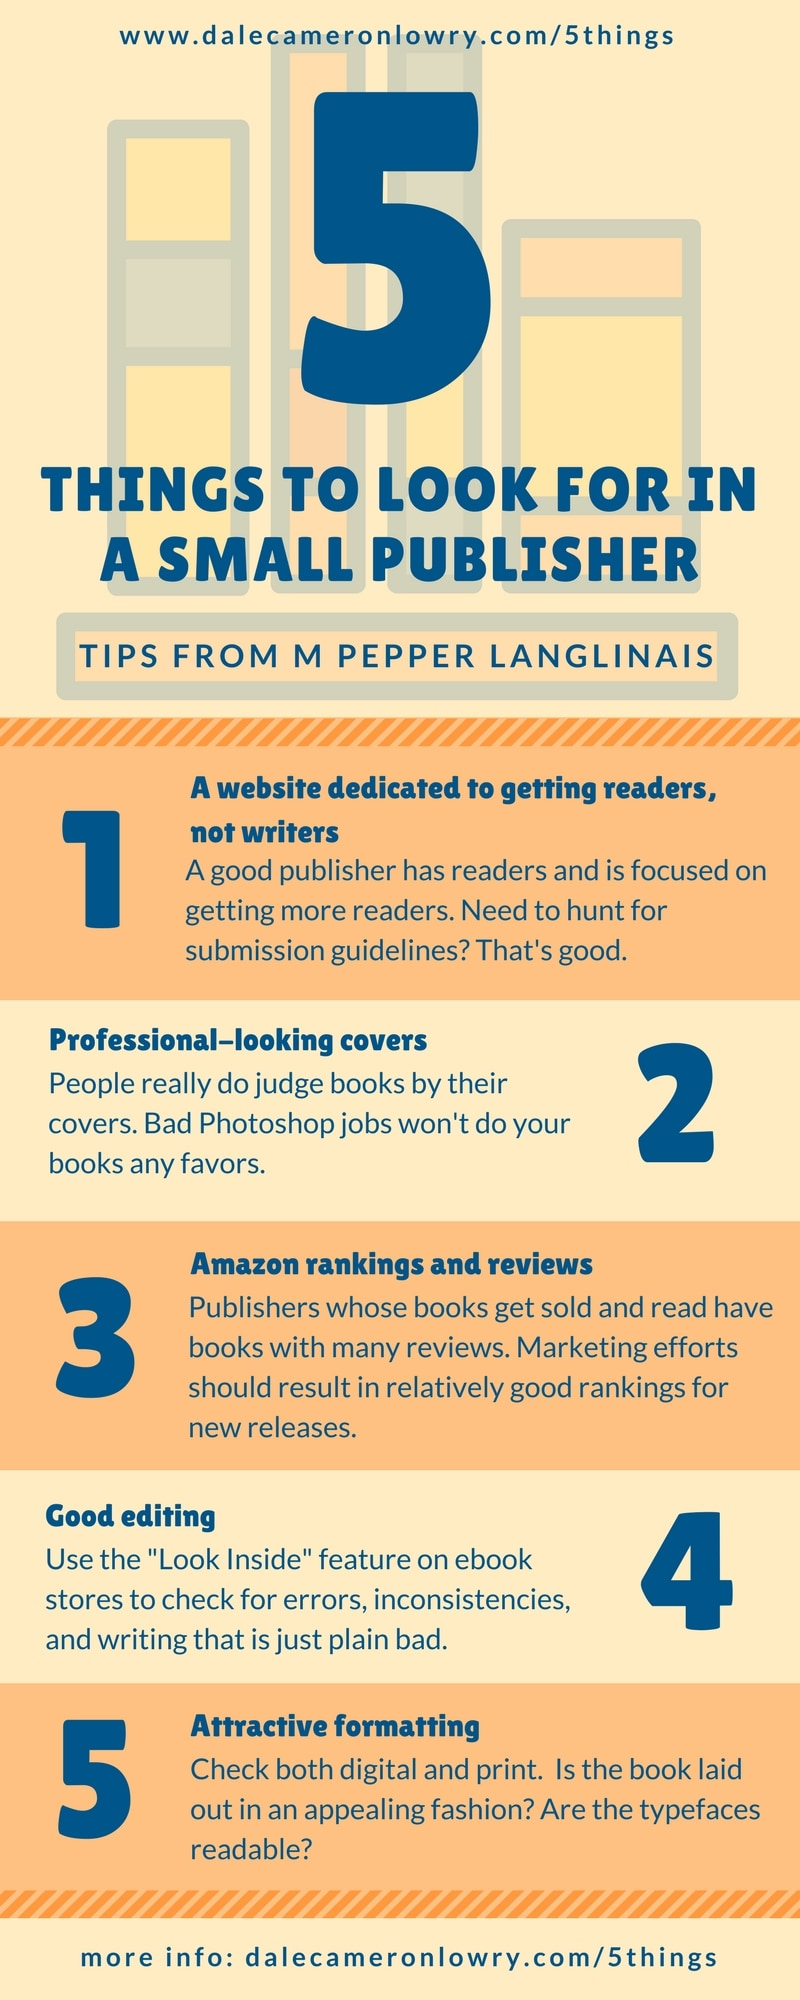 "Infographic with the following text source: dalecameronlowry.com/5things 5 Things to Look for in a Small Publisher Tips From M Pepper Langlinais A website dedicated to getting readers, not writers A good publisher has readers and is focused on getting more readers. Need to hunt for submission guidelines? That's good. Professional-looking covers Sorry, but people really do judge books by their covers. Crap covers that look like bad Photoshop jobs won't do your books any favors. Amazon rankings and reviews Publishers whose books get sold and read have books with many reviews. Marketing efforts should result in relatively good rankings for new releases. Good editing Use the ""Look Inside"" feature on ebook stores to check for errors, inconsistencies, and writing that is just plain bad. Attractive formatting Check both digital and in print. Is the book laid out in an appealing fashion? Are the typefaces readable? more info: dalecameronlowry.com/5things"